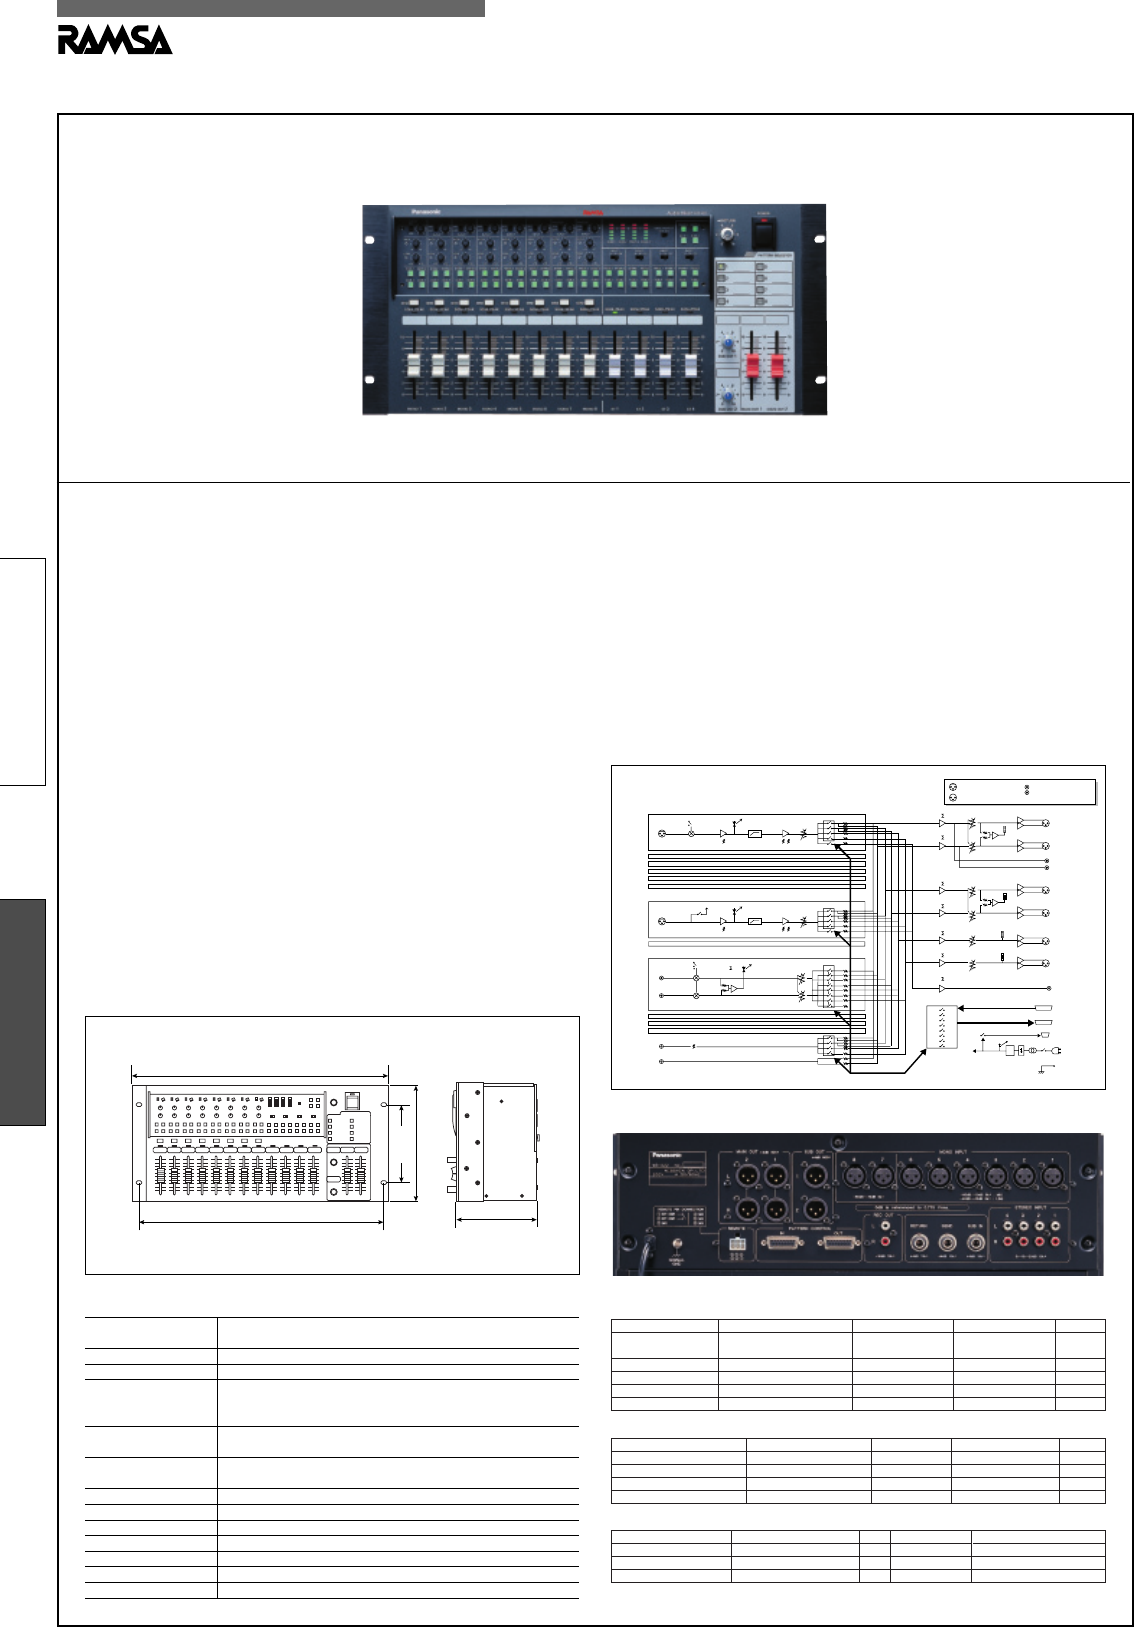 panasonic music mixer wr x22nh user guide manualsonline com rh music manualsonline com 4 Channel Audio Mixer Hand Mixer Harvey Norman